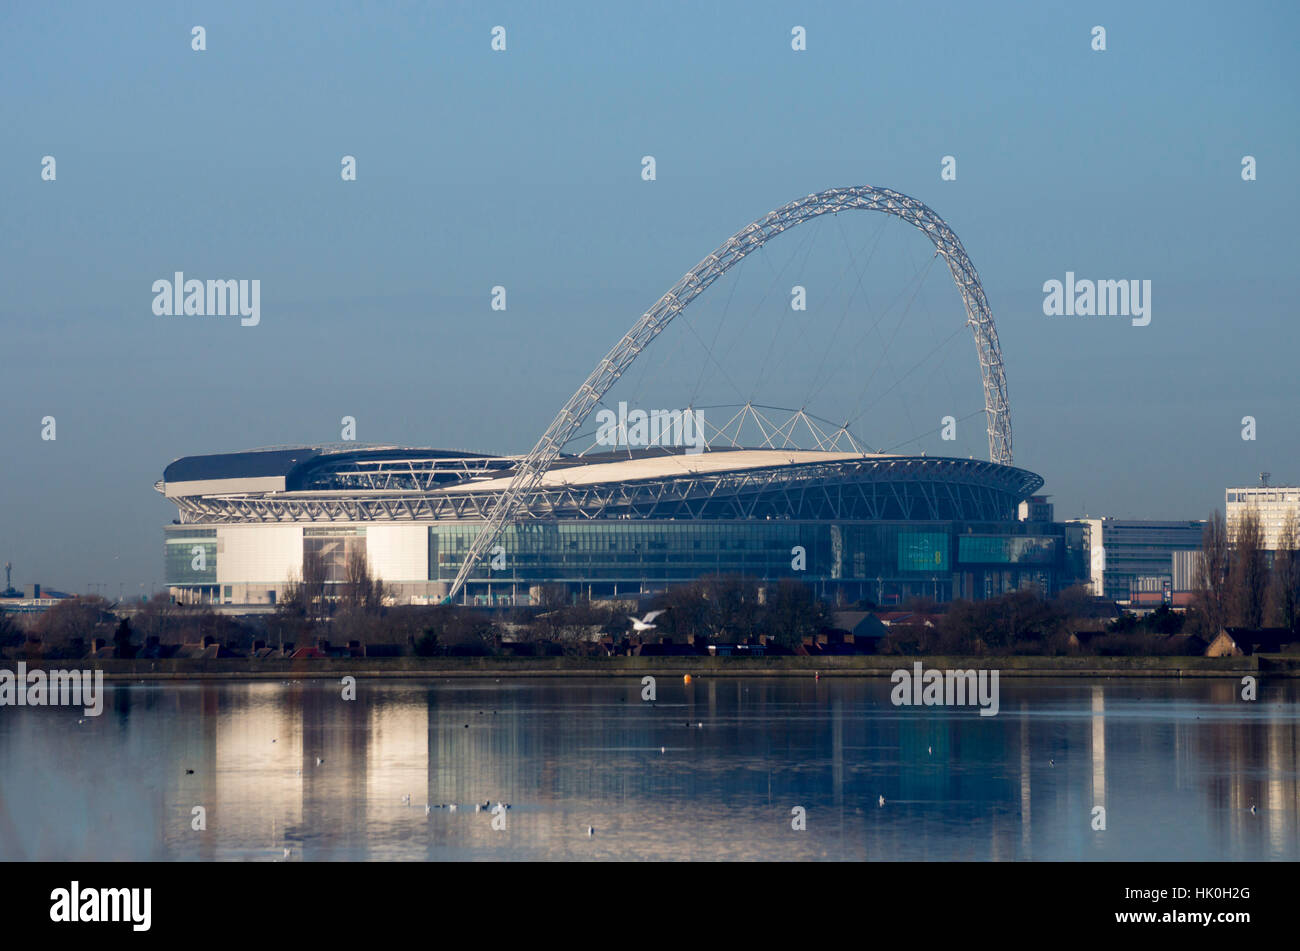 Wembley Stadium across Welsh Harp Lake, London, England, United Kingdom - Stock Image